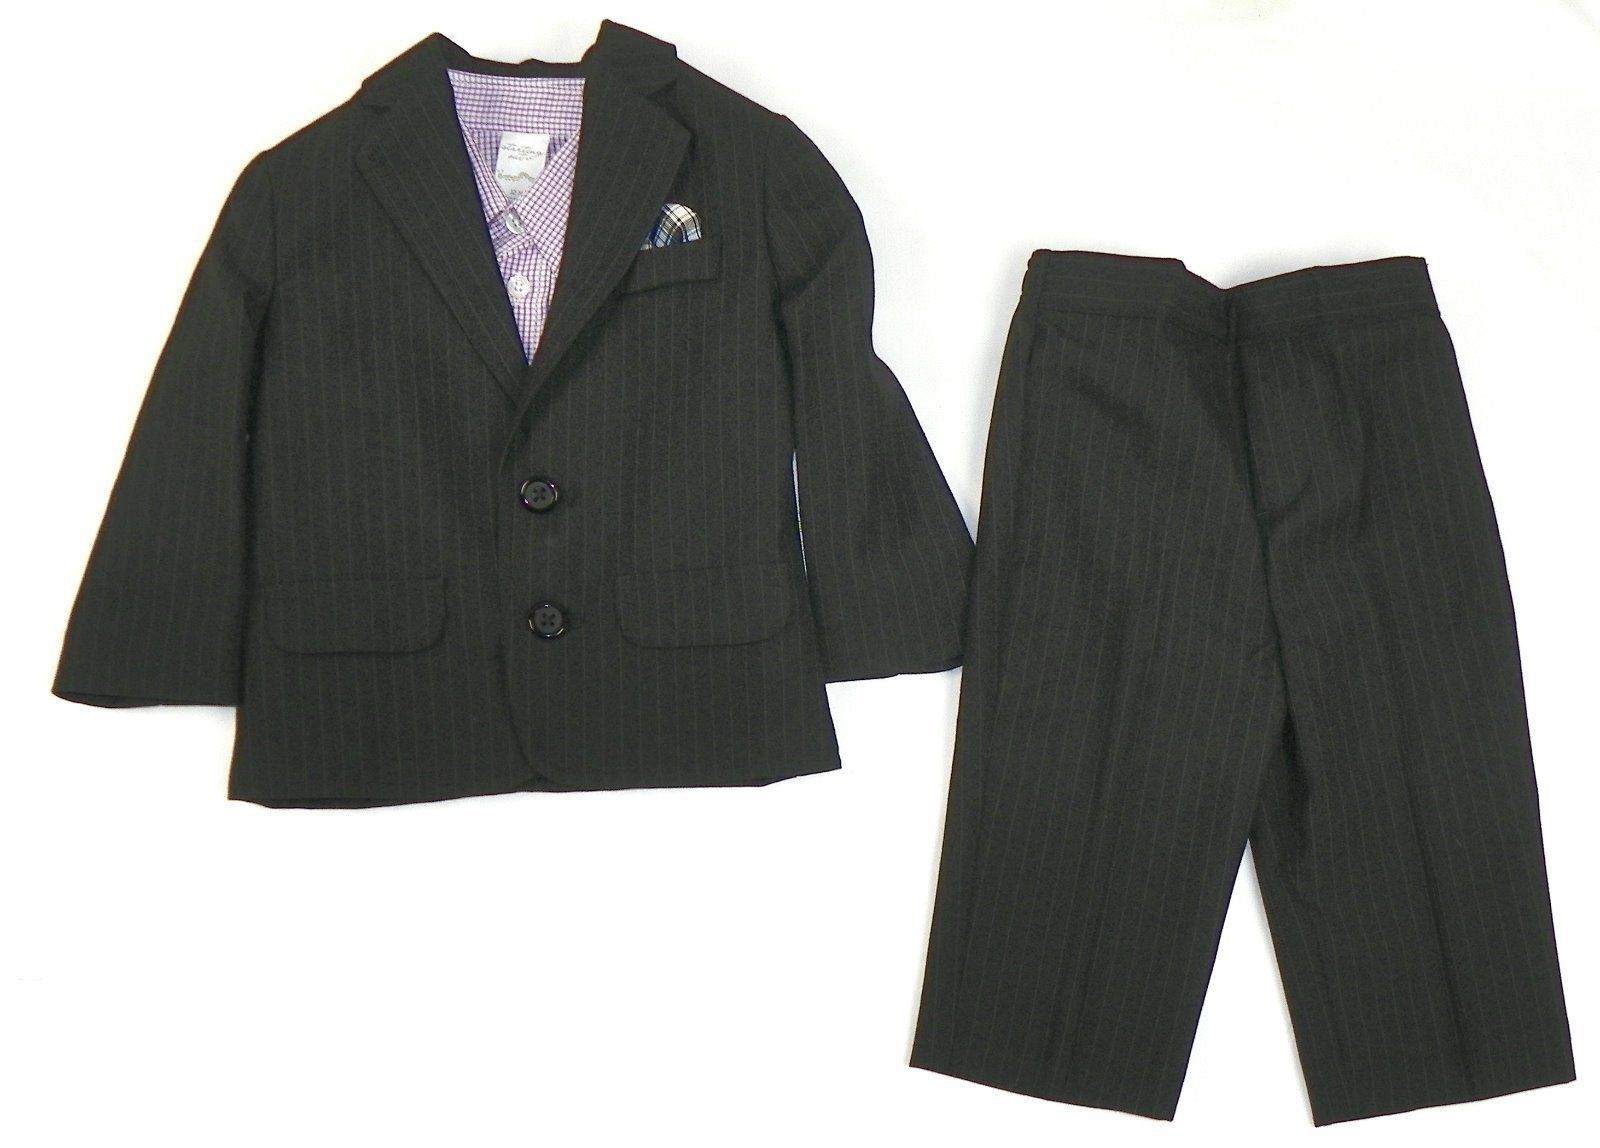 Infant Baby Boy's Suit 3-Piece Long Sleeve Shirt Jacket Pants Starting Out NEW